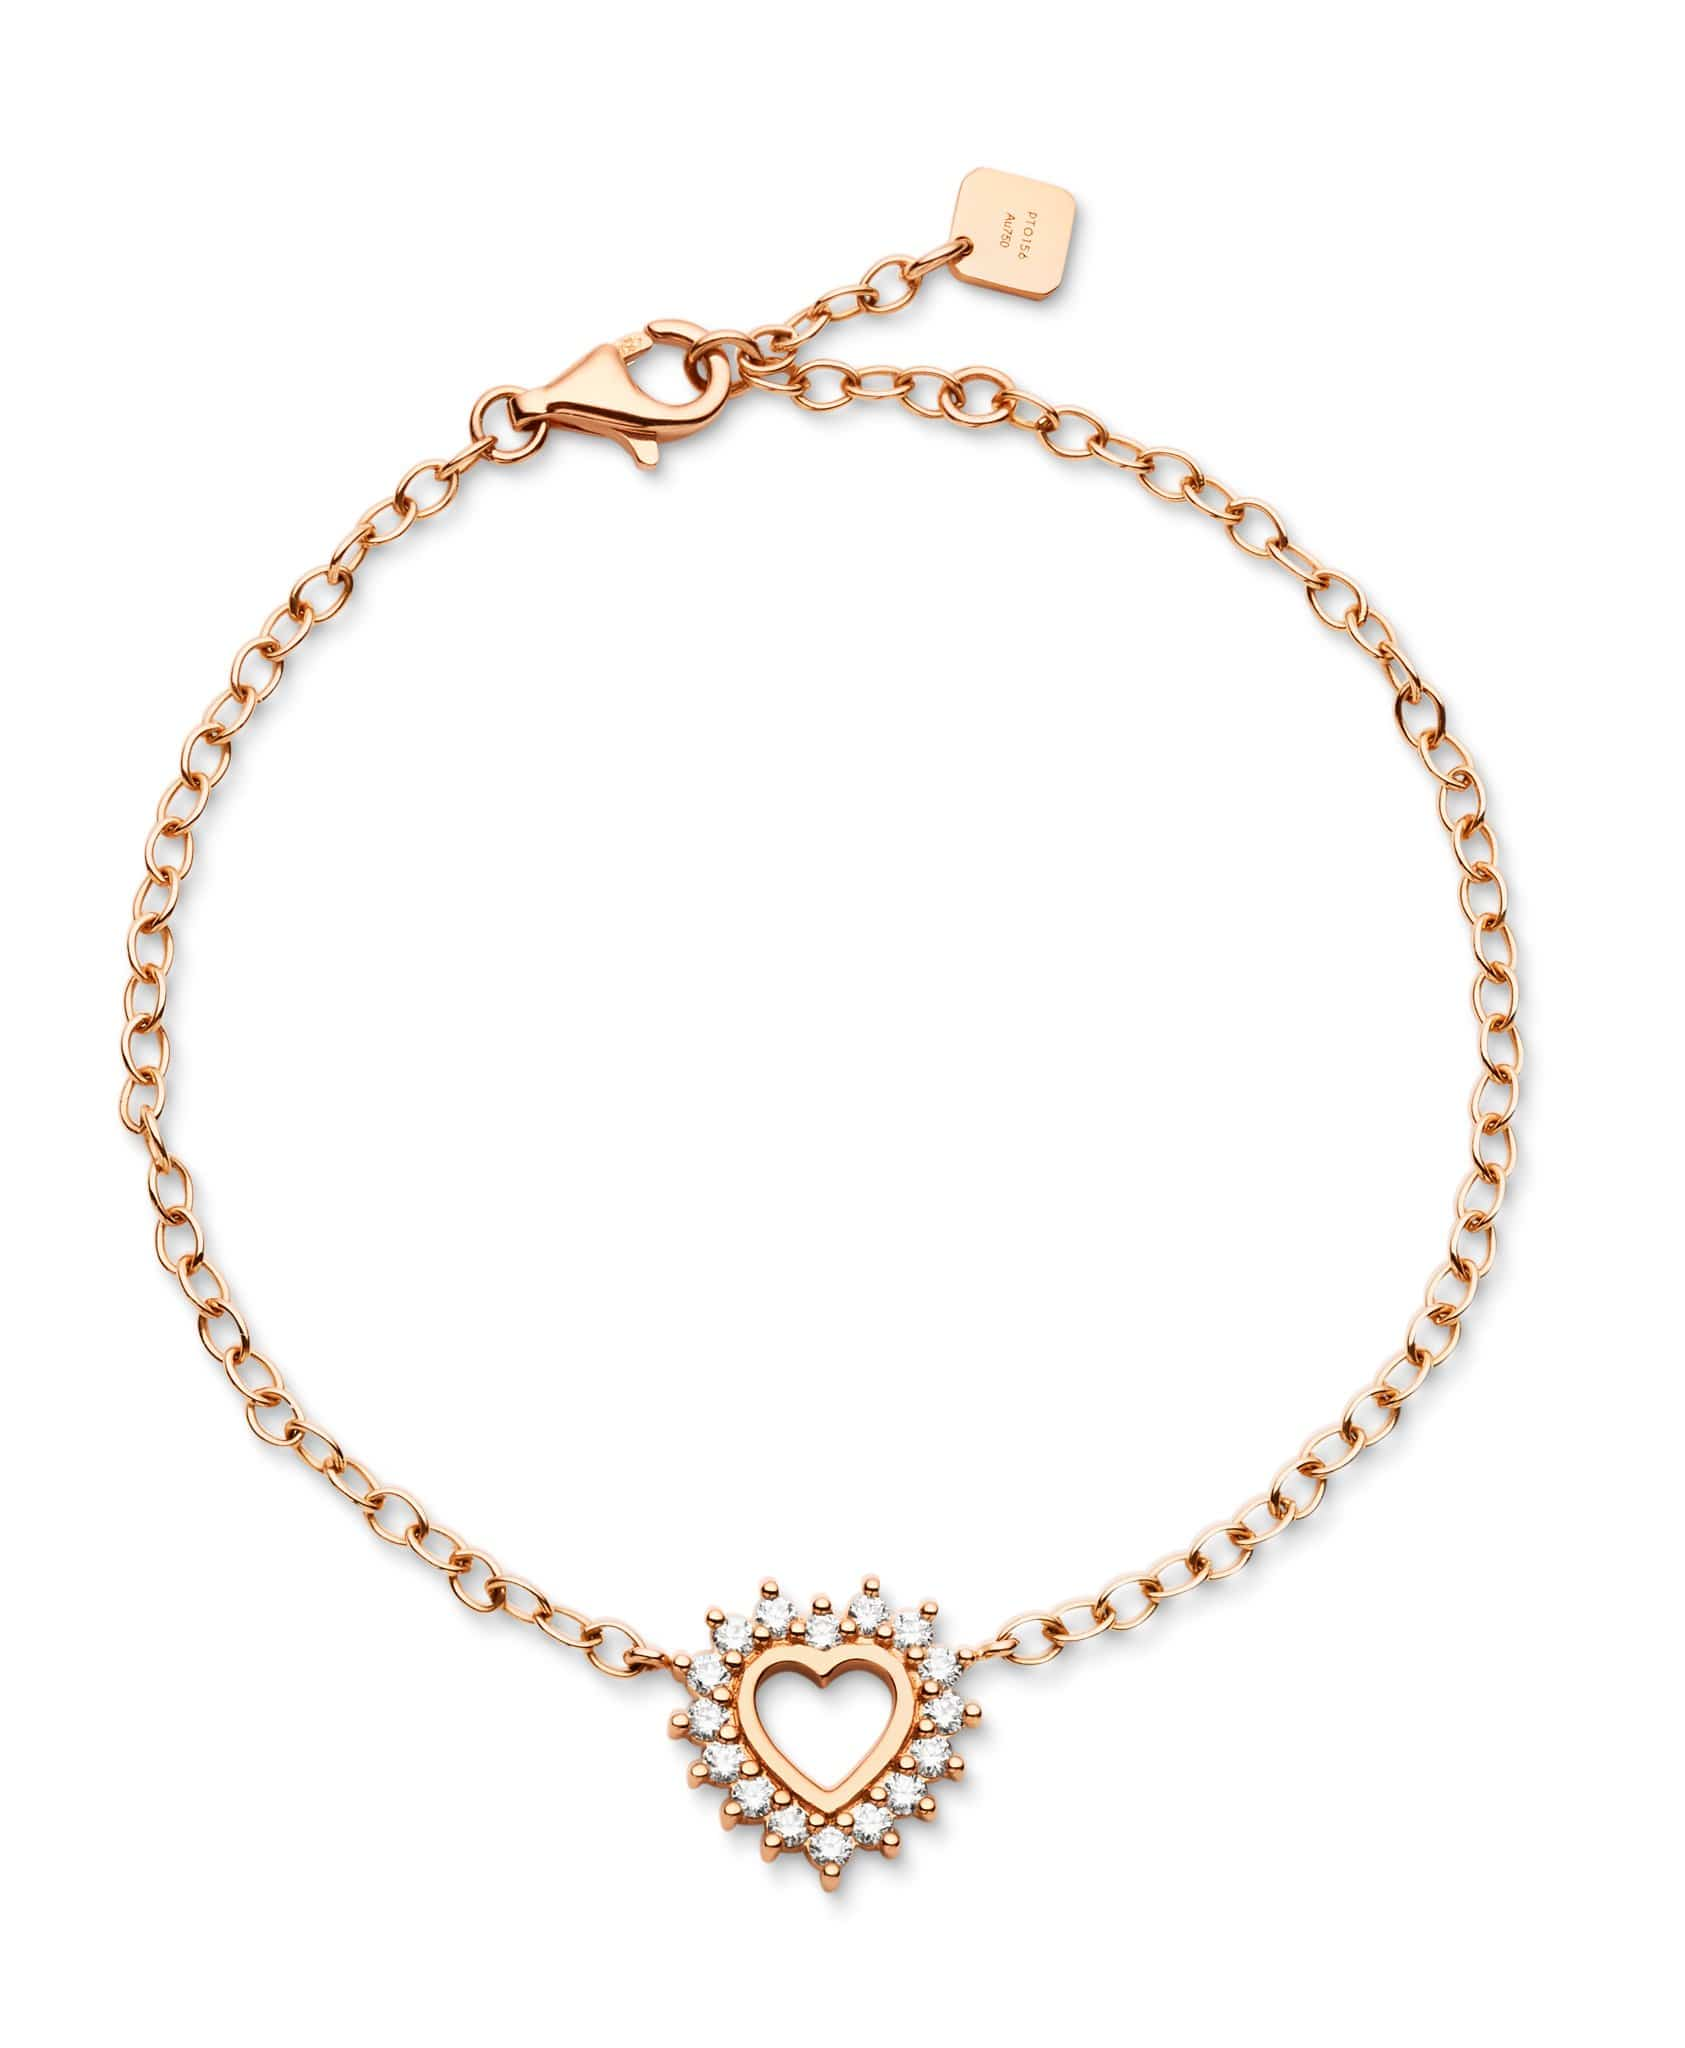 Medium Love Bracelet: Discover Luxury Fine Jewelry | Nouvel Heritage || Rose Gold